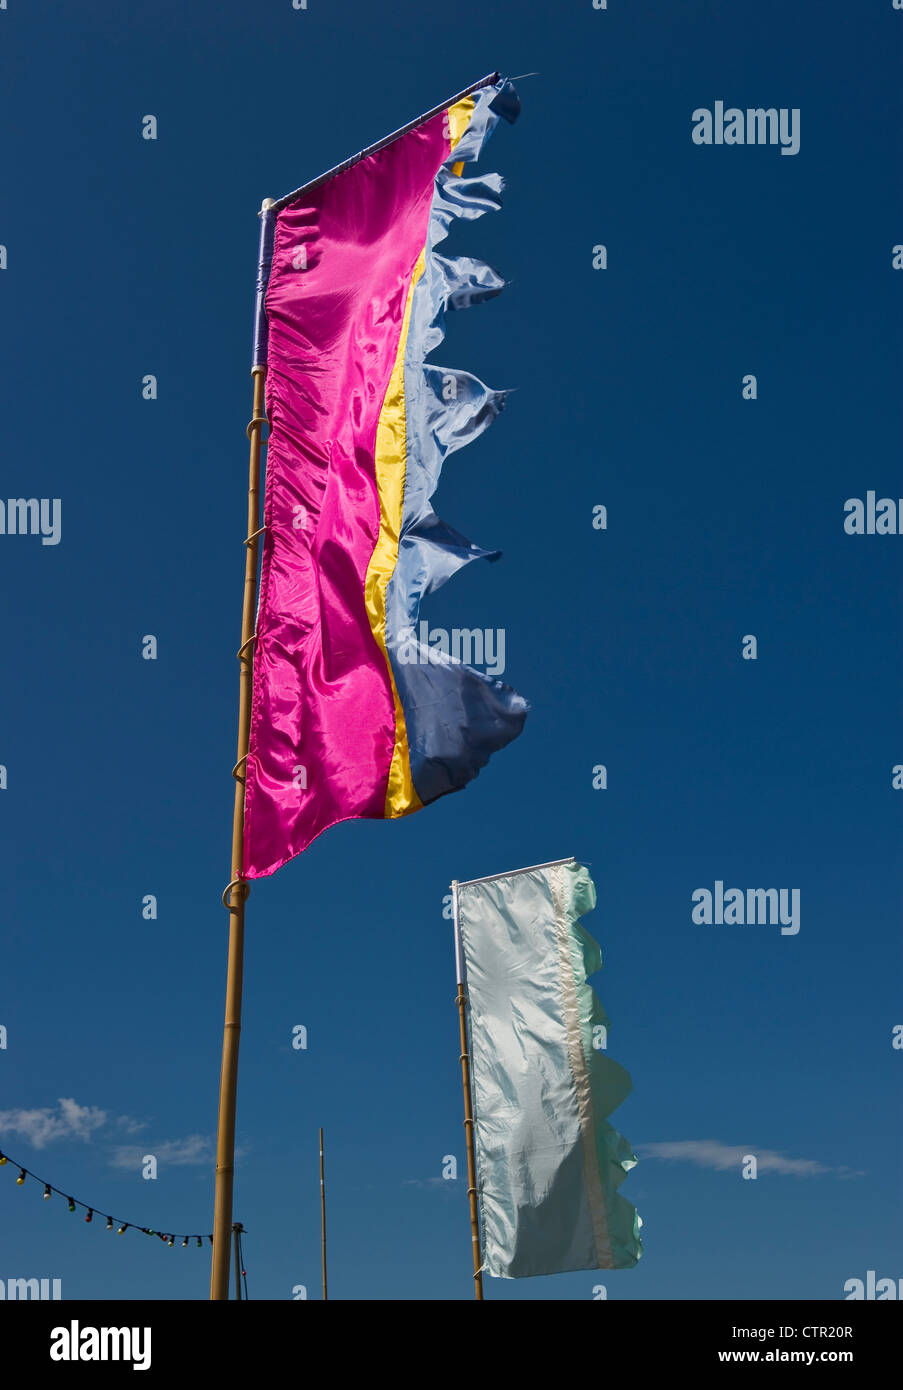 Banners fly at the Sheep Music 2012 festival in Presteigne, Powys, UK - Stock Image